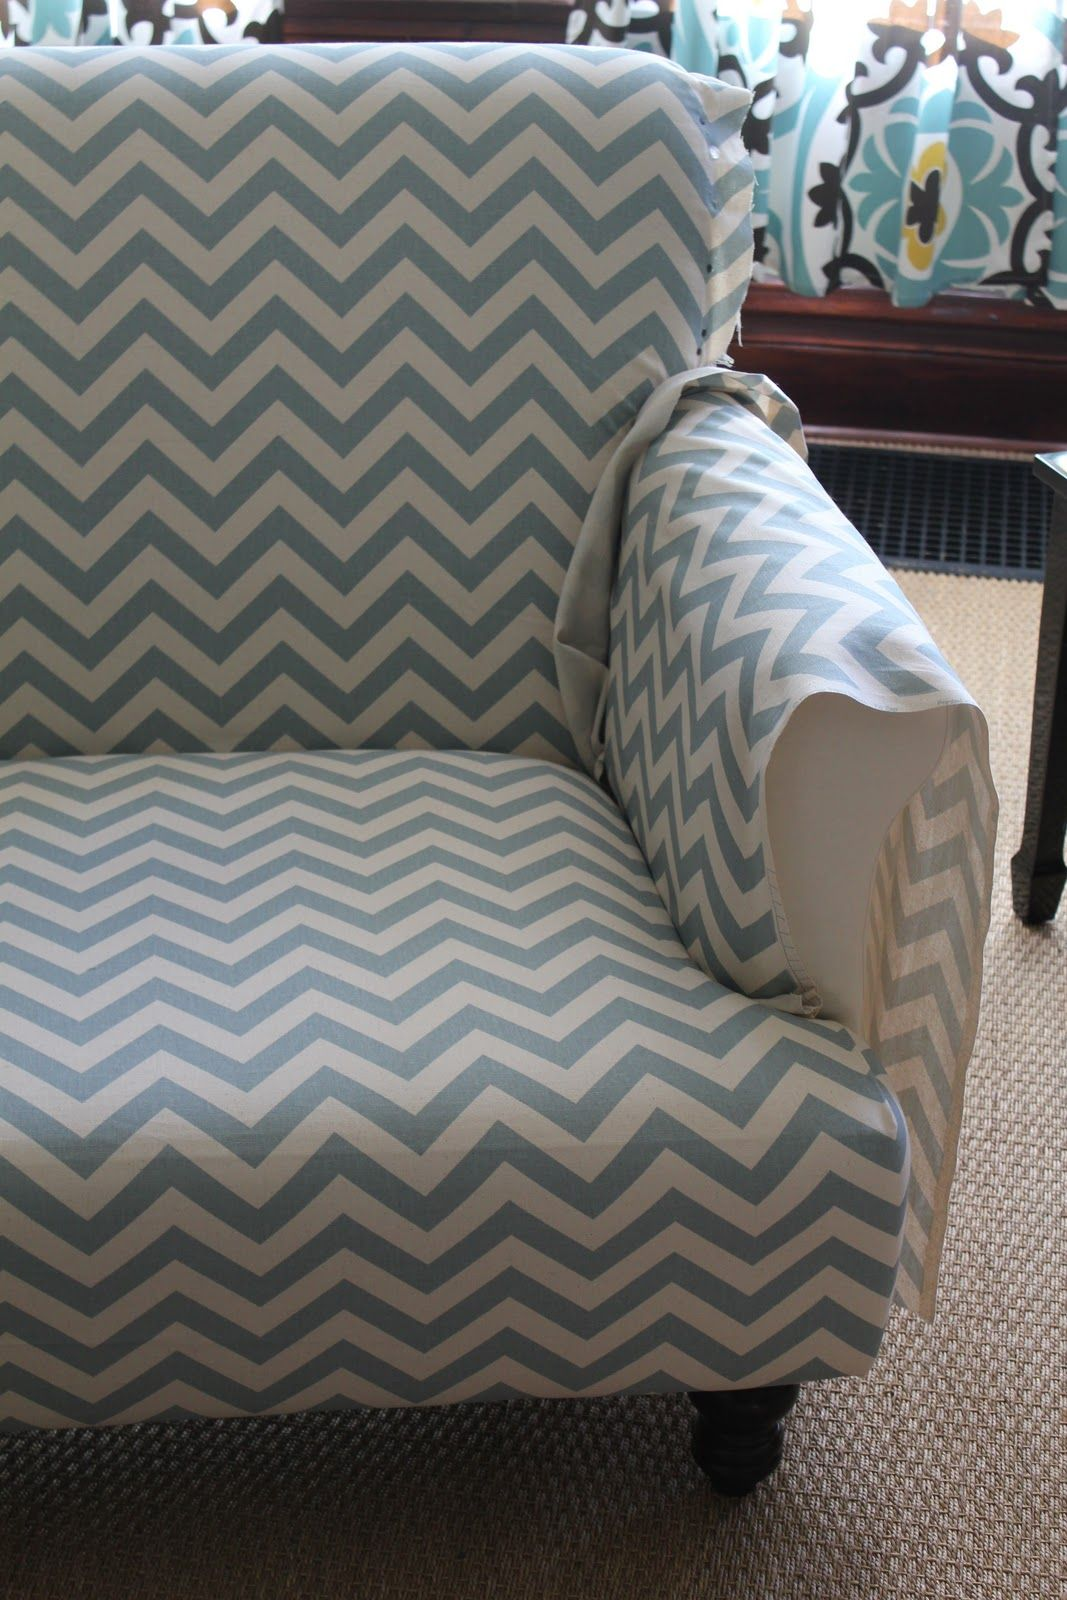 Back on Festive Road: Sofa makeover: From Shabby to Chic............